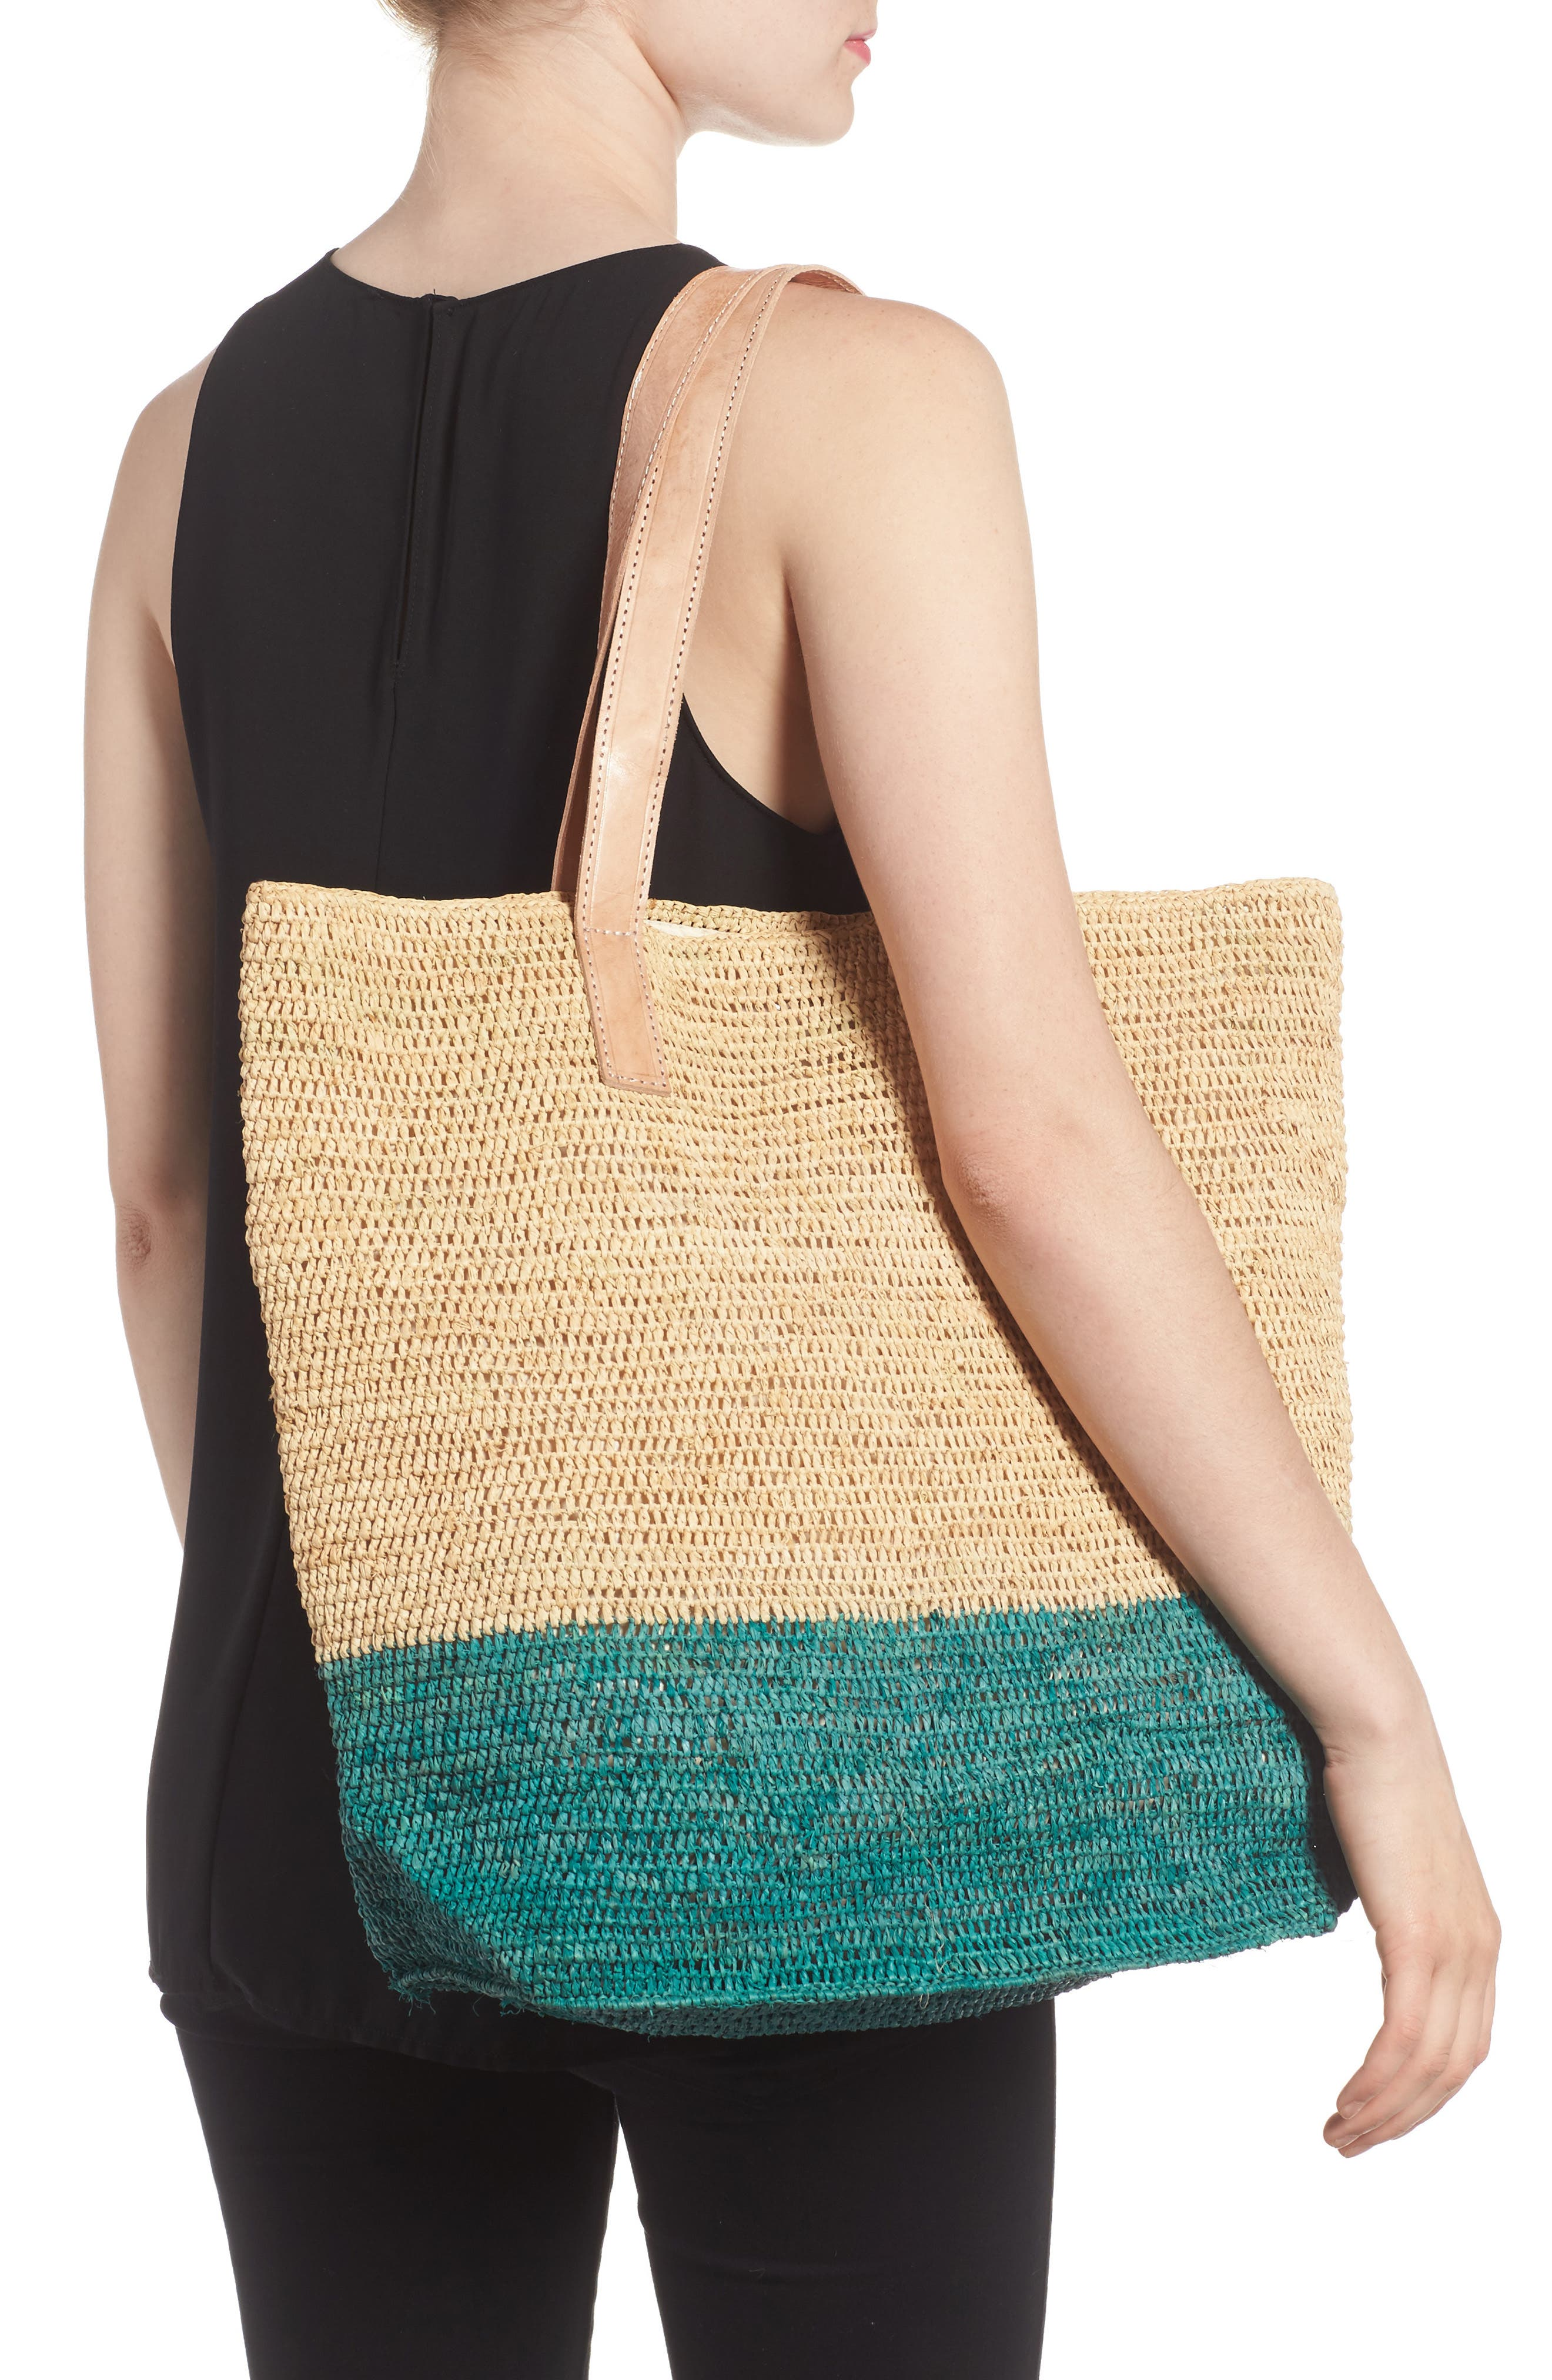 Montauk Woven Tote with Pom Charms,                             Alternate thumbnail 2, color,                             401